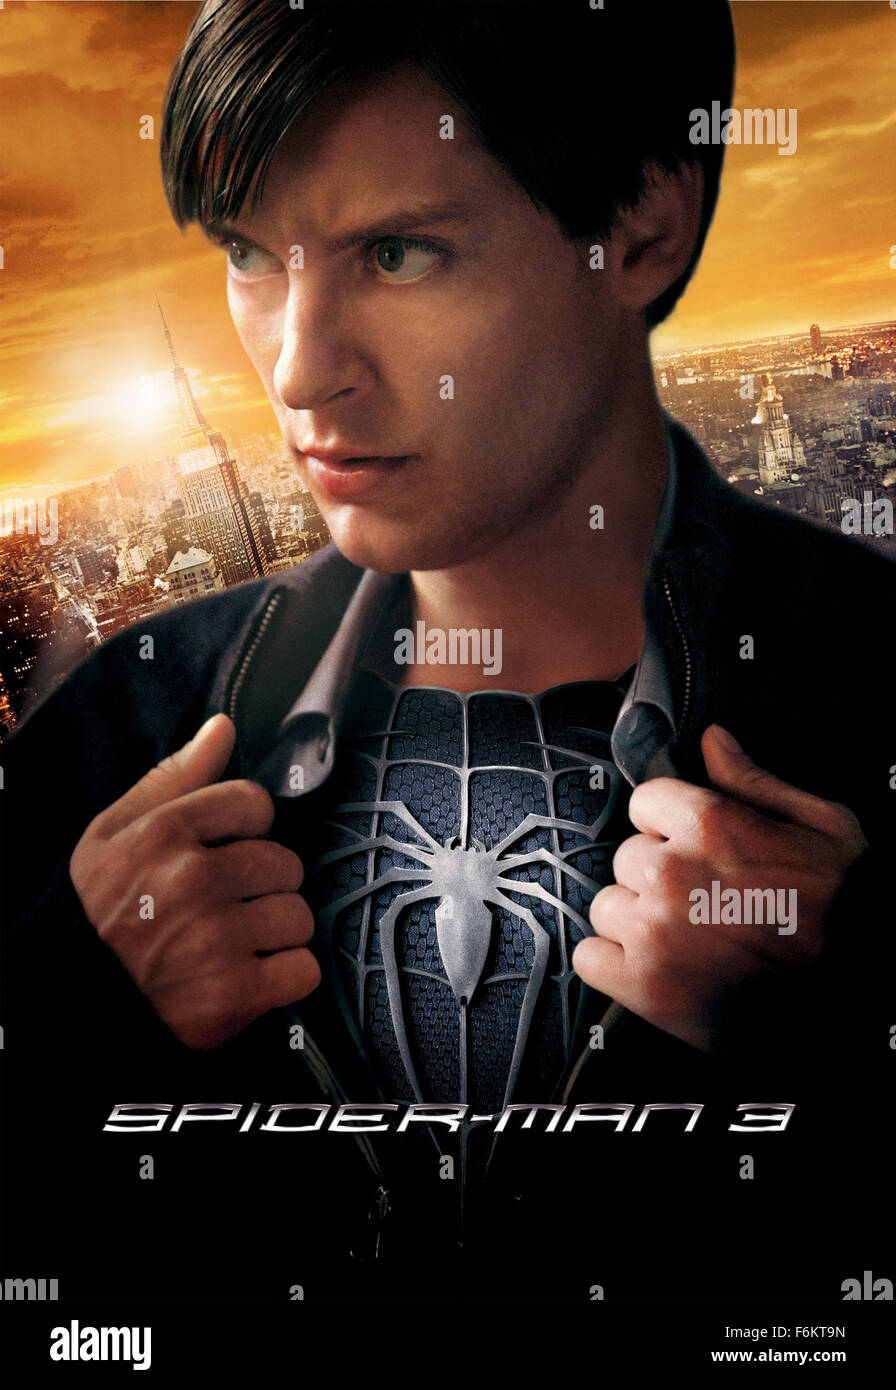 RELEASE DATE May 2007 MOVIE TITLE Spider Man 3 STUDIO Columbia Pictures Sony Entertainment PLOT A Strange Black Entity From Another World